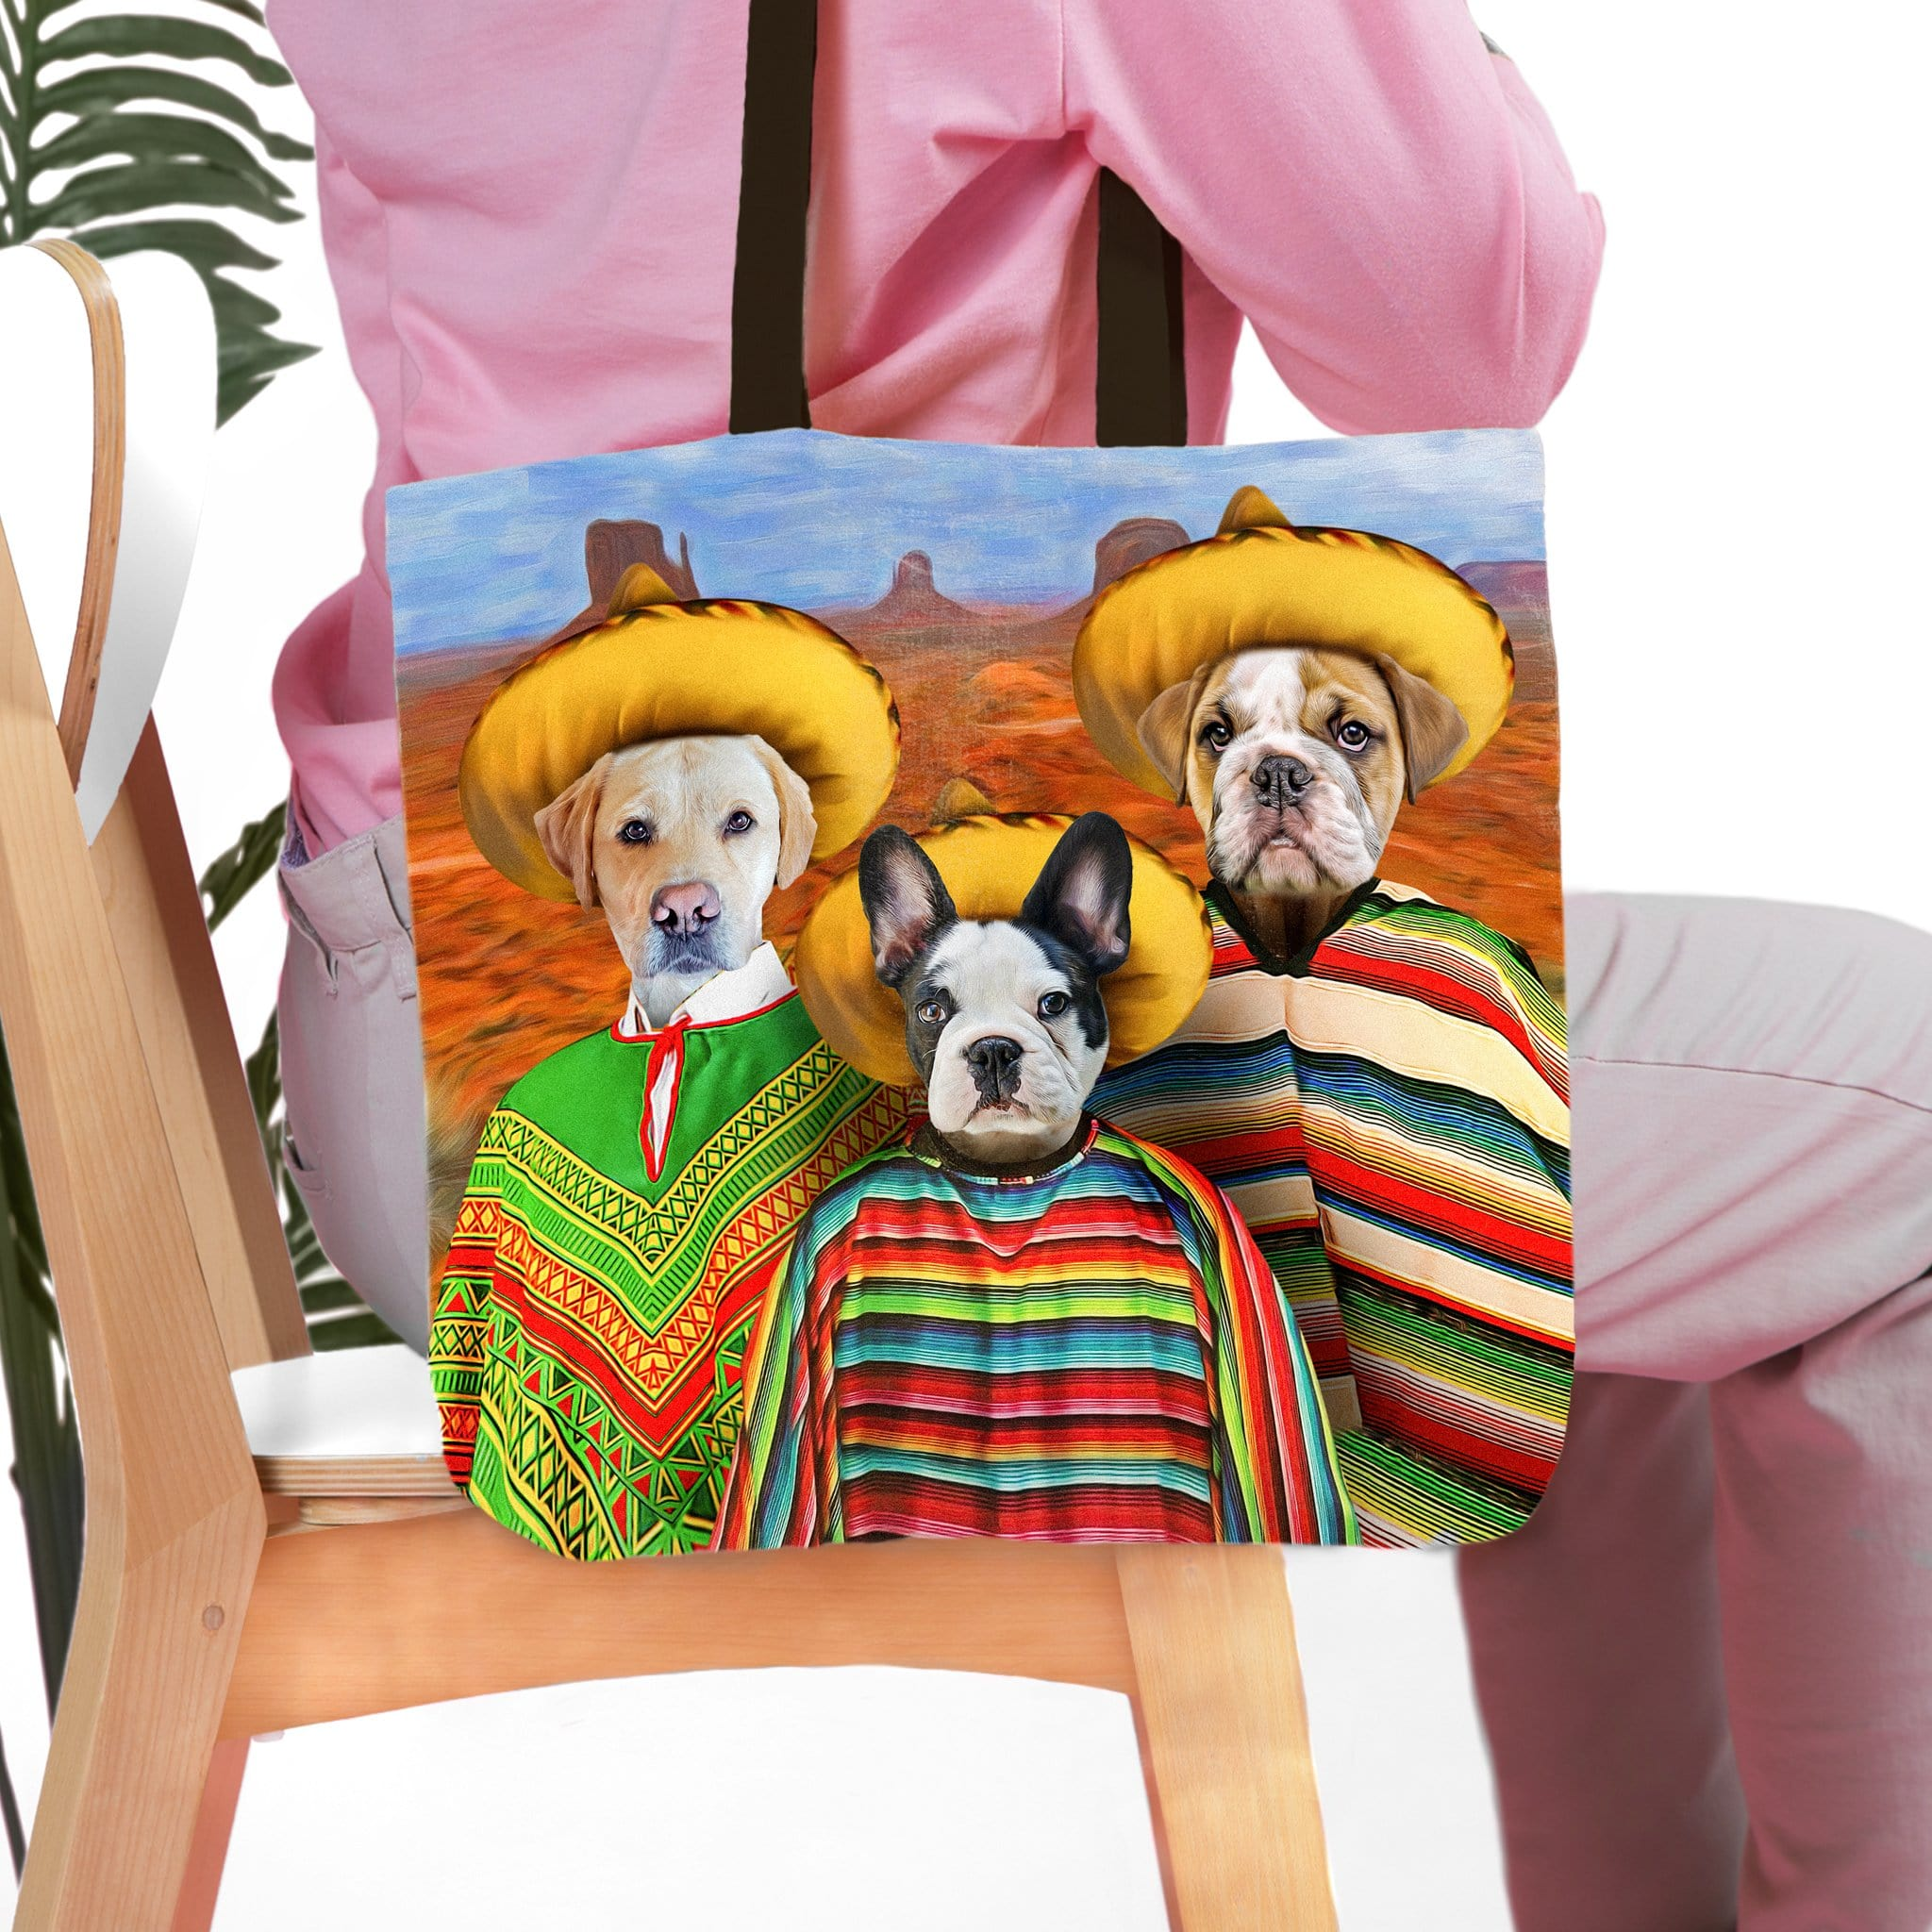 '3 Amigos' Personalized 3 Pet Tote Bag